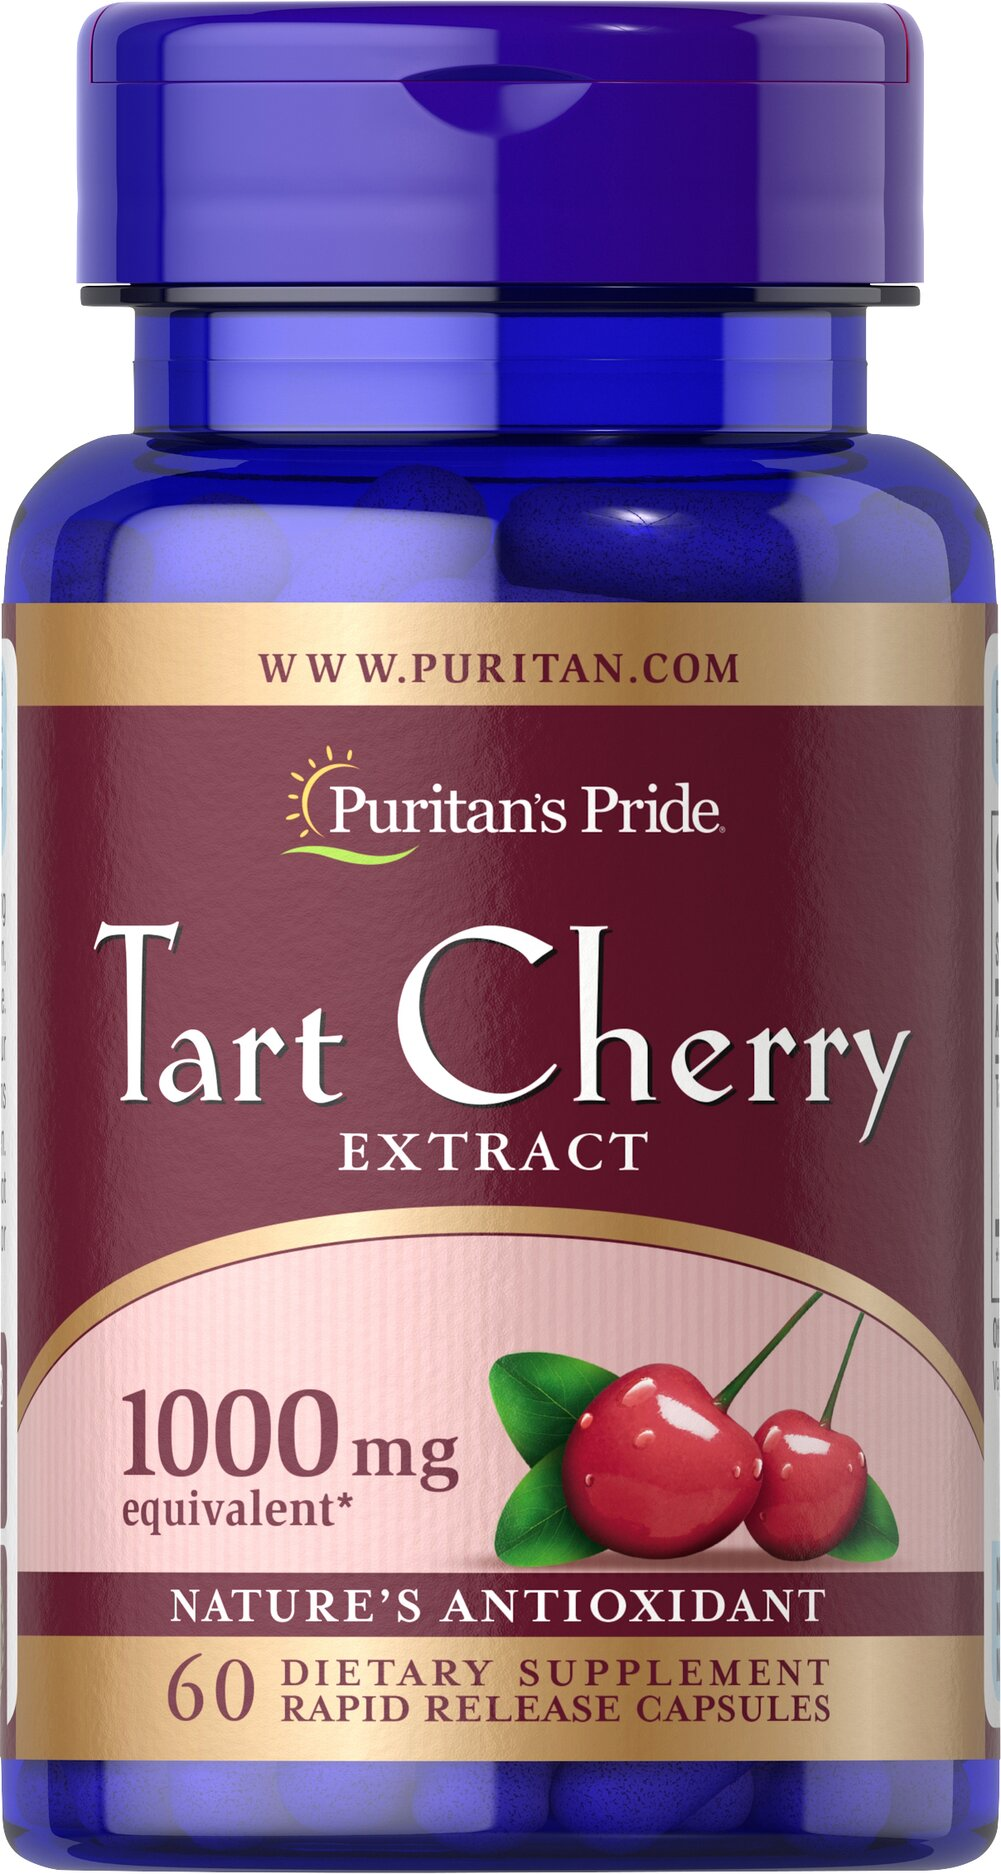 Tart Cherry Extract 1000 mg <p>Cherries are known for their natural content of antioxidants and other beneficial components. Now you can easily obtain the benefits of Tart Cherry in our convenient Tart Cherry capsules. Each serving contains a 4:1 extract of Tart Cherry to help retain the most important constituents.</p> 60 Capsules 1000 mg $14.39